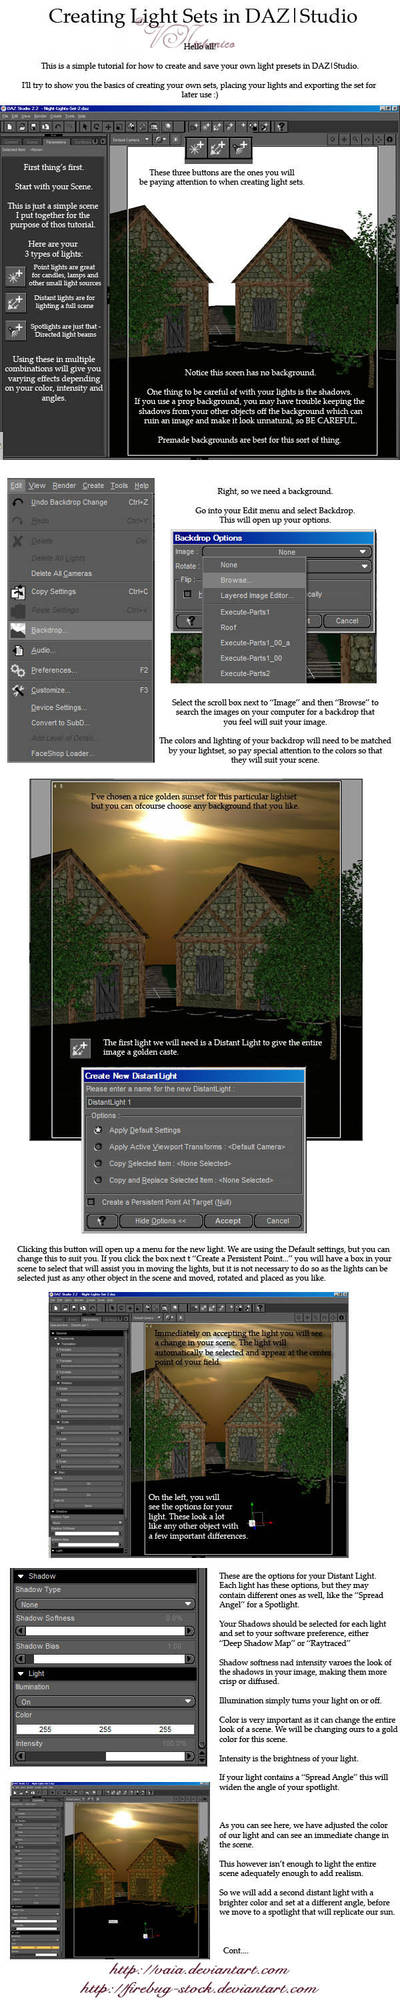 Creating Lights in DAZ, Pt.1 by firebug-stock